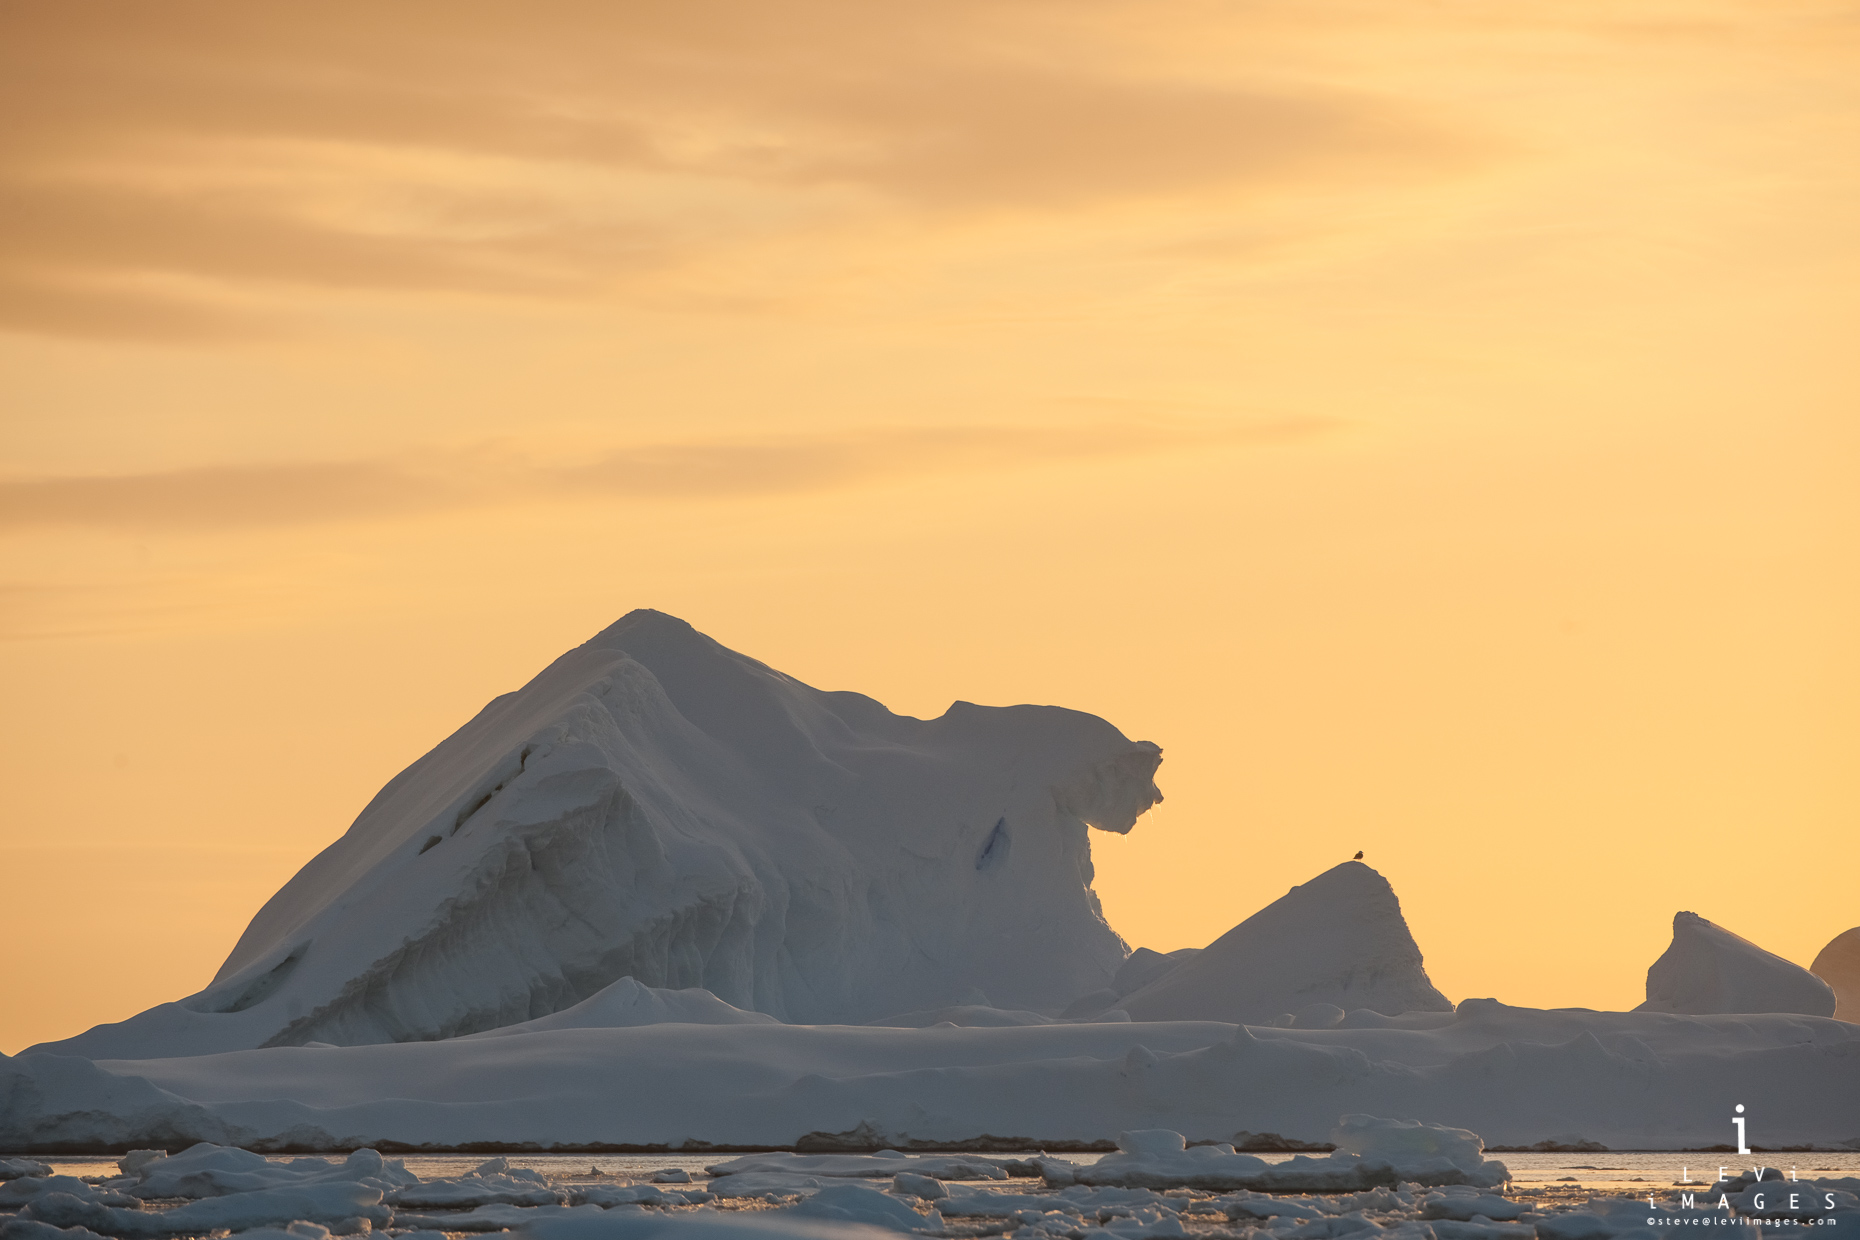 sphinx-like iceberg looks at a bird in golden light. Booth island, Antarctica